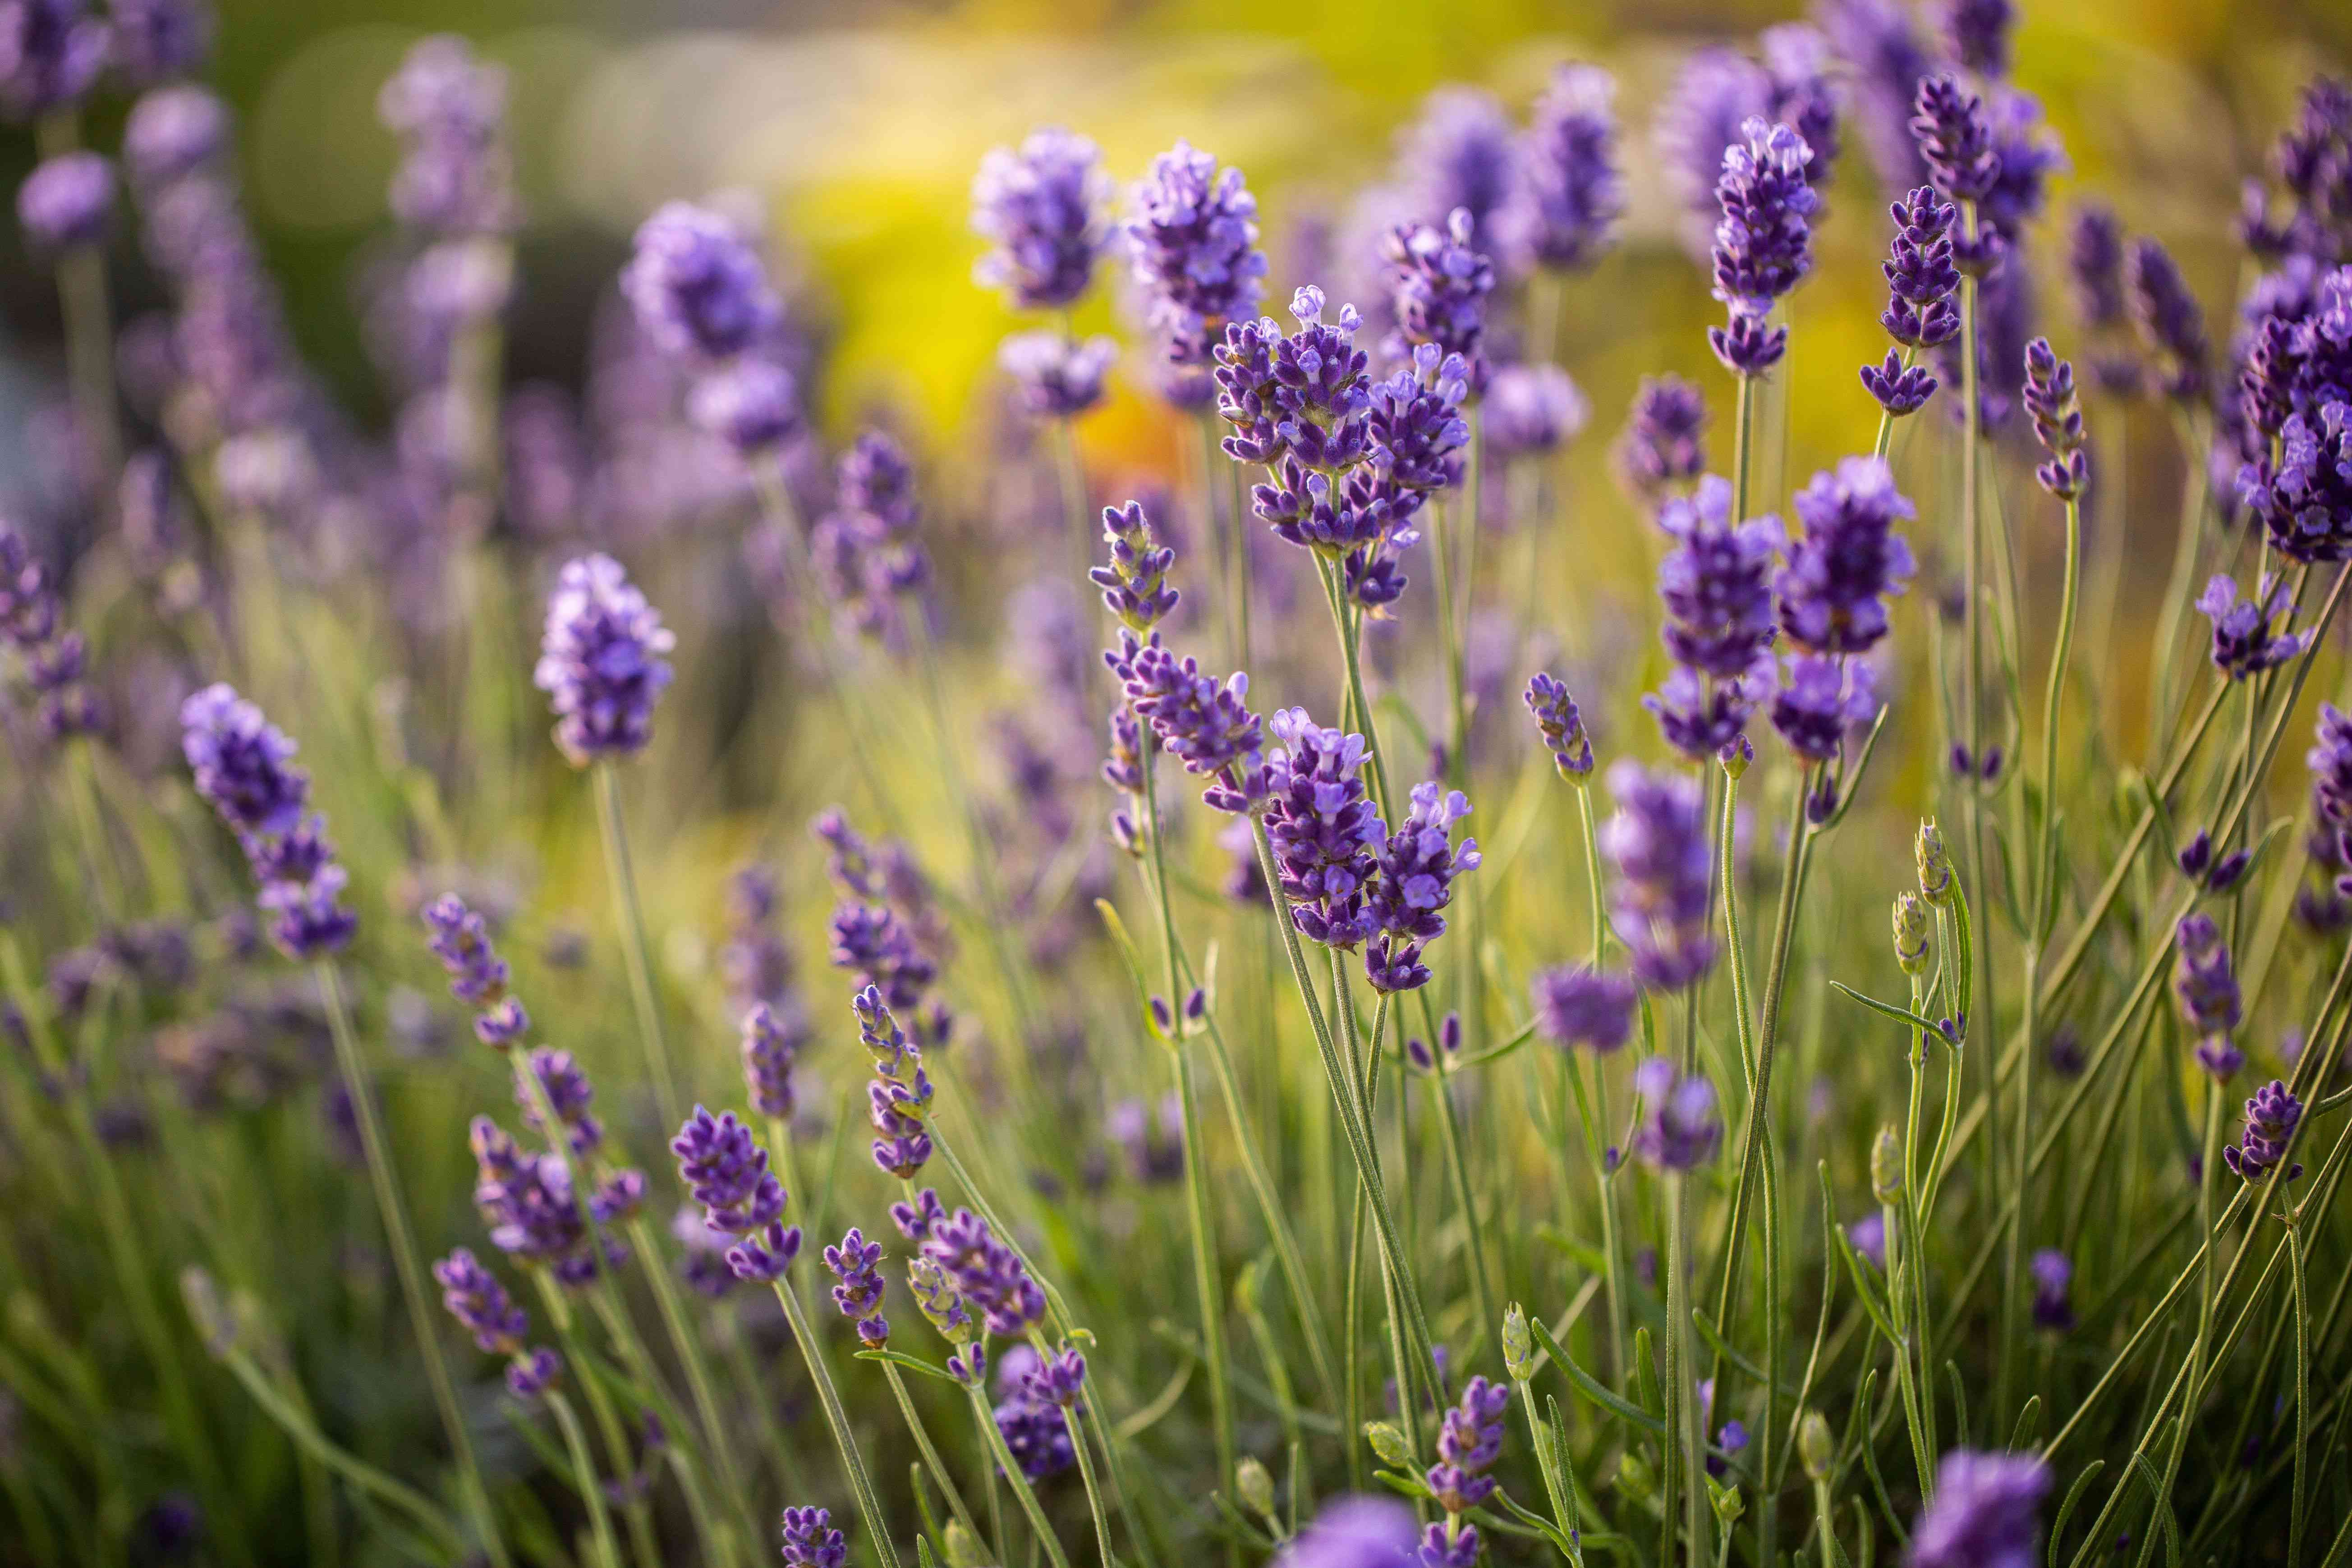 Lavender flowers with small purple petals on thin stems in garden